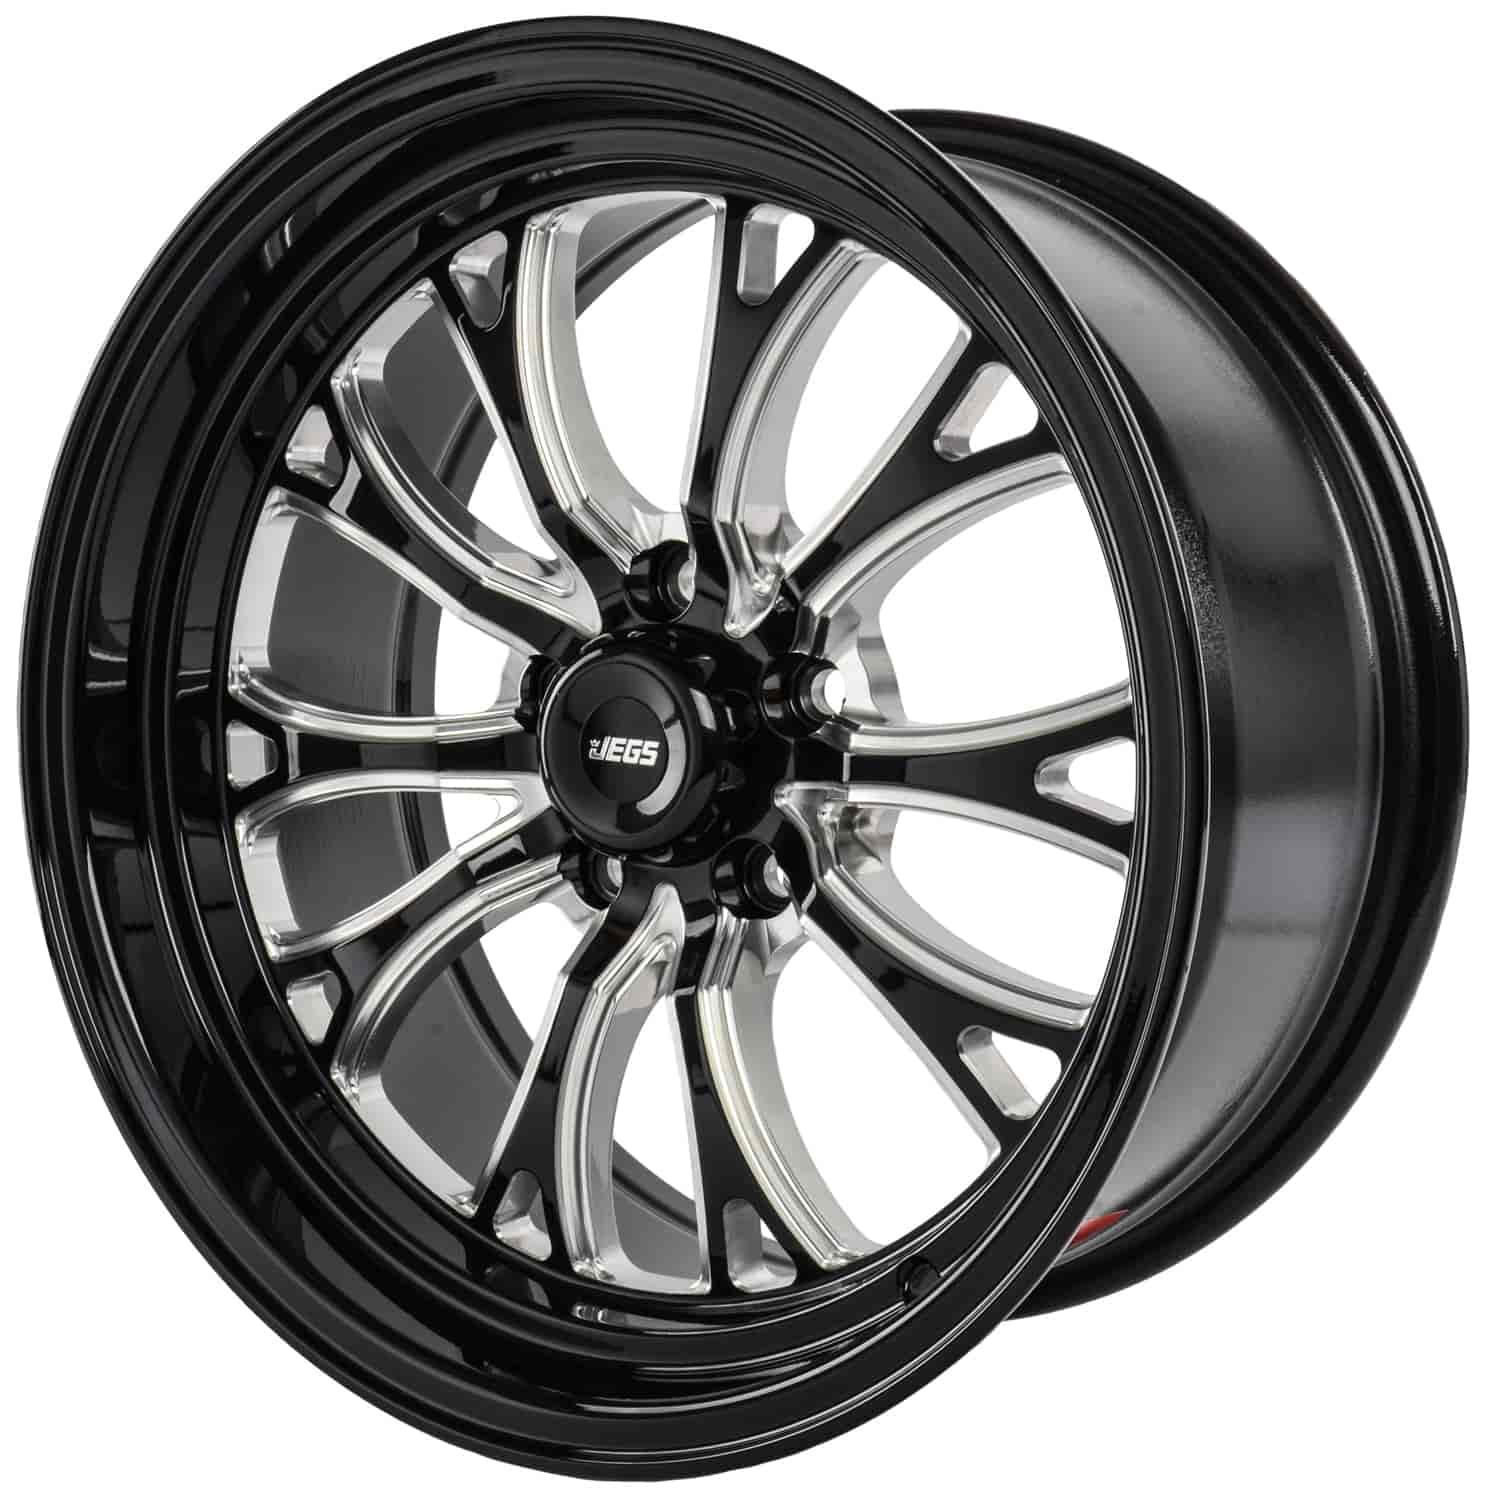 jegs 681446 ssr spike wheel size 17 x 7 jegs 2005 Mustang Rear View jegs 681446